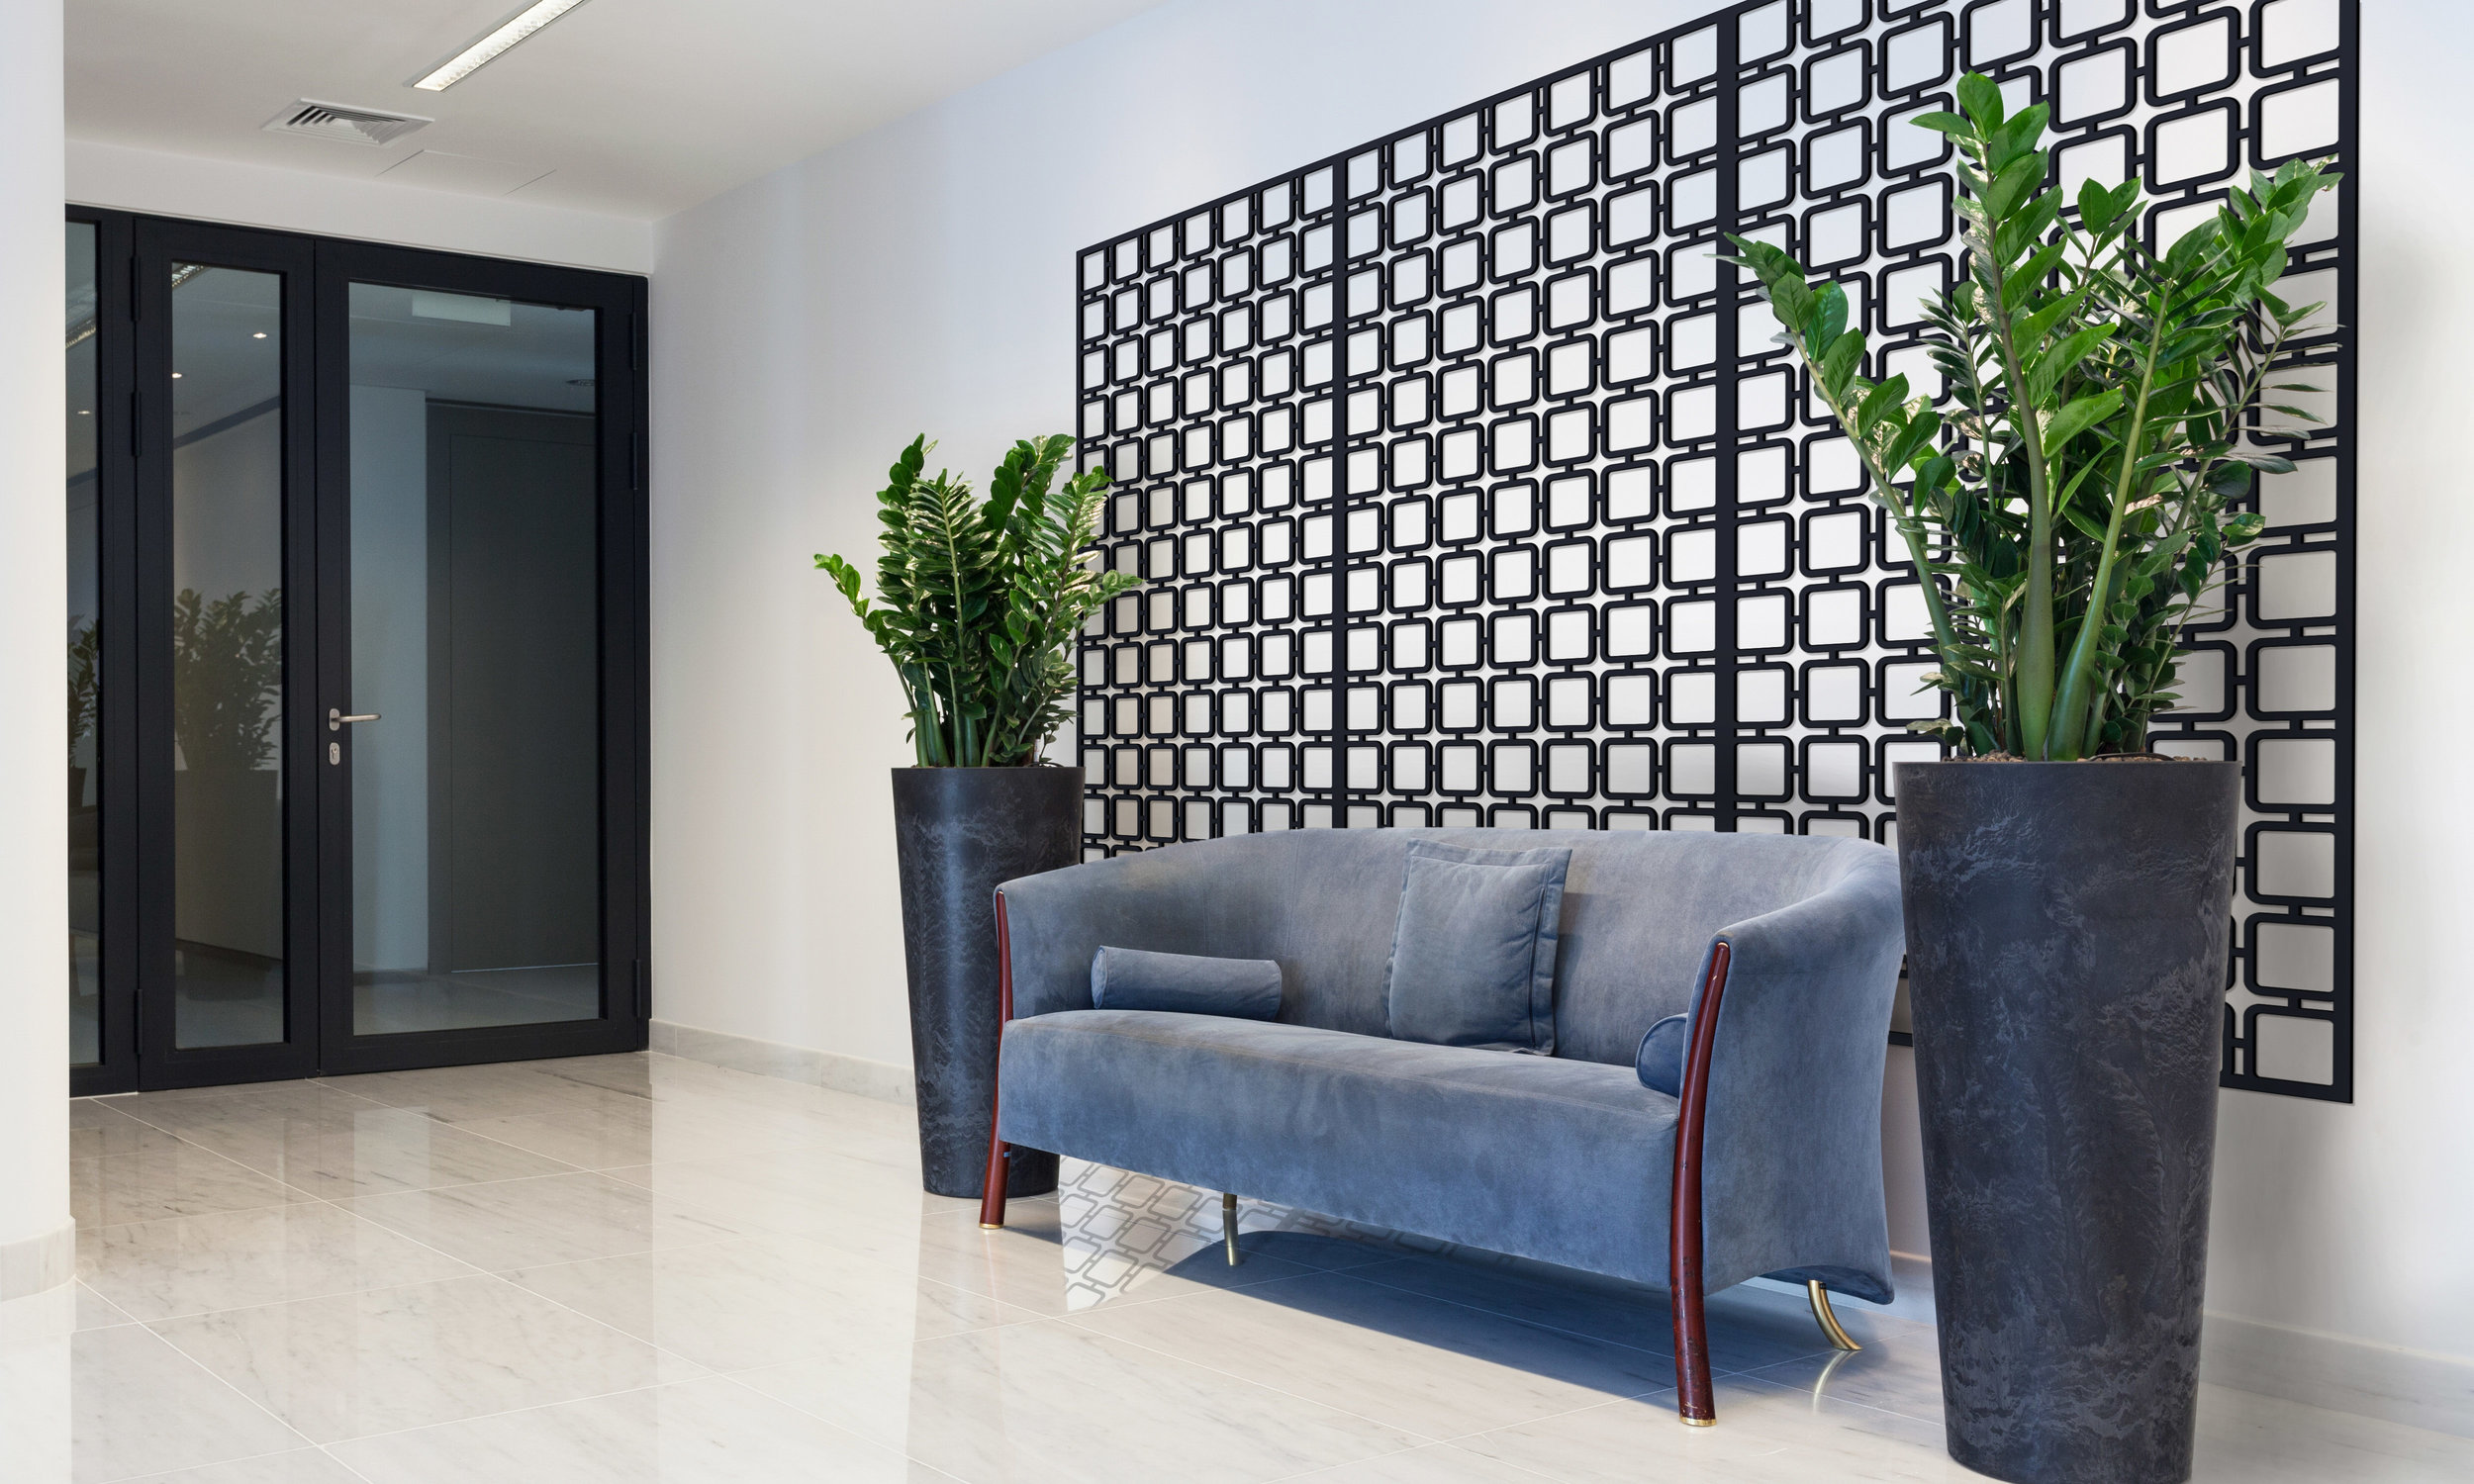 Installation Rendering B   Square Mezzo decorative office wall panel - painted